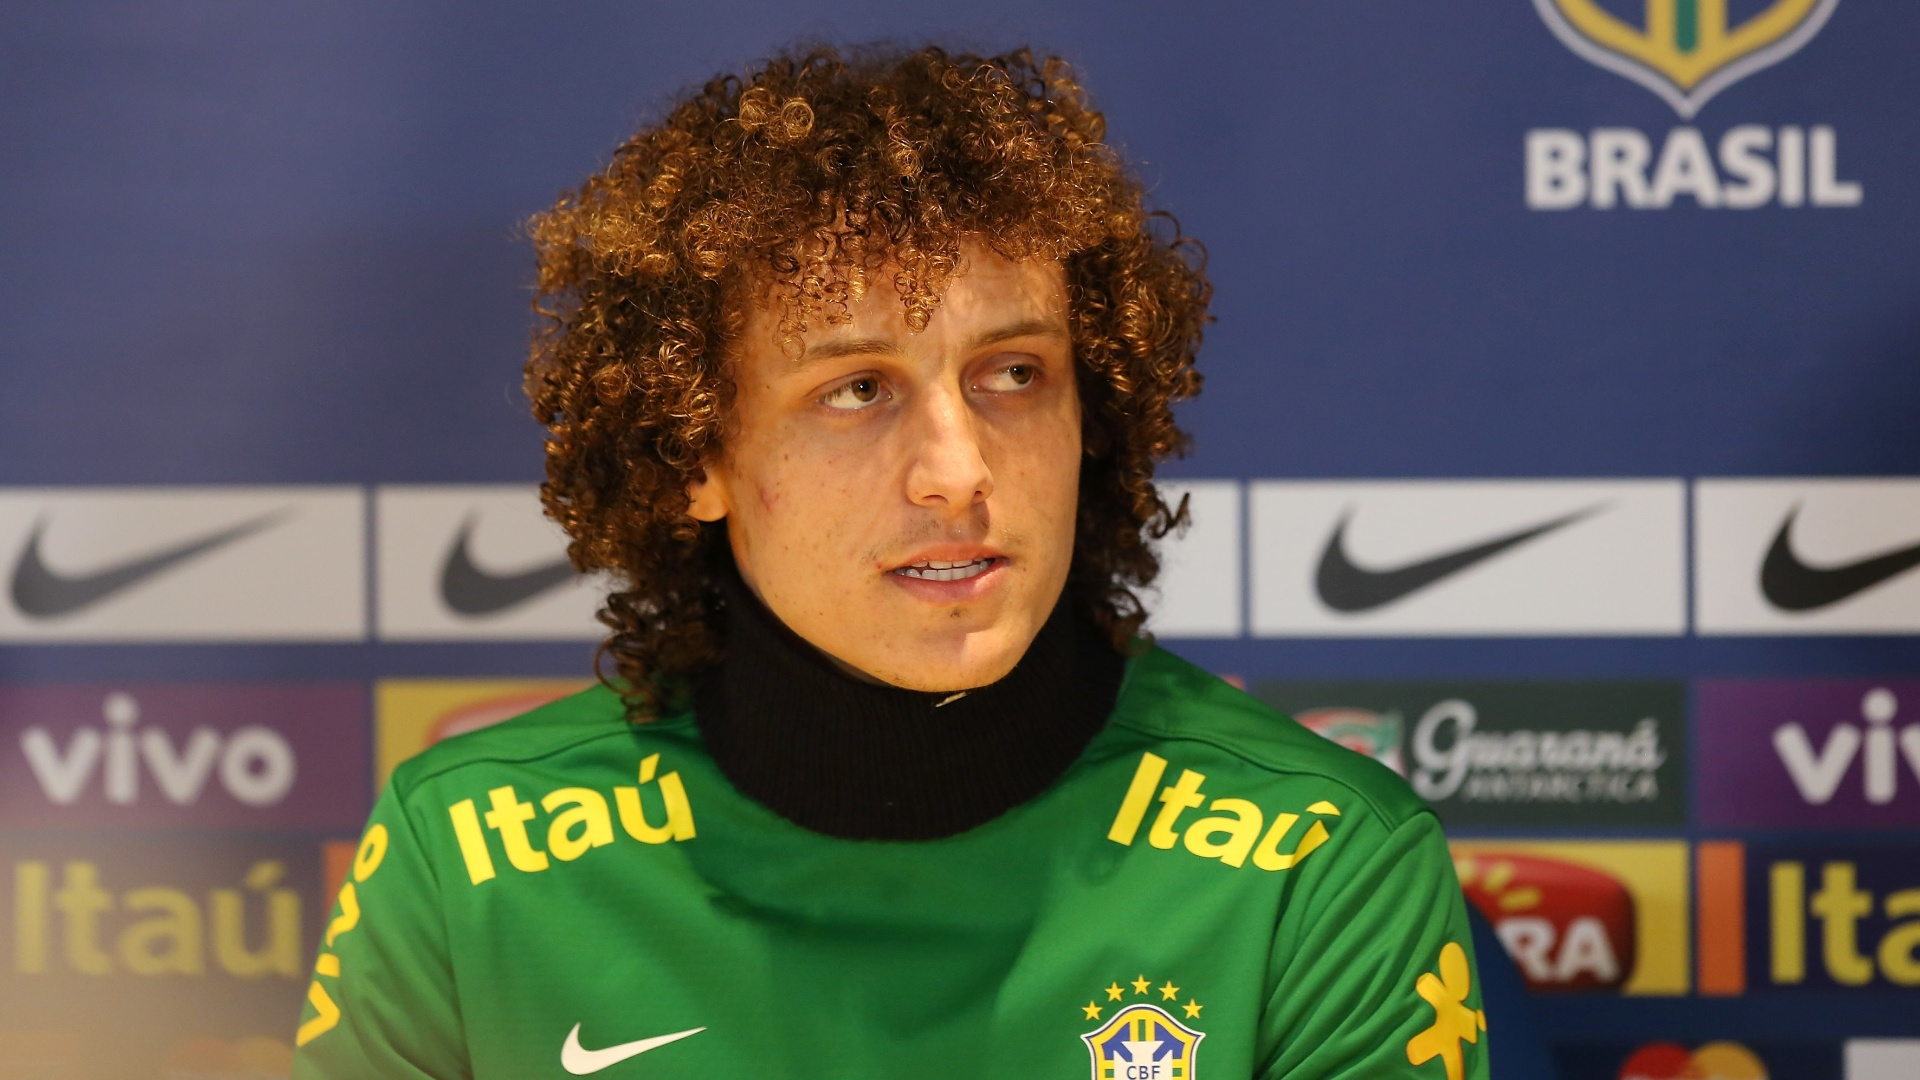 24.mar.2013 - David Luiz participa de coletiva de imprensa aps o treino da seleo brasileira, em Londres